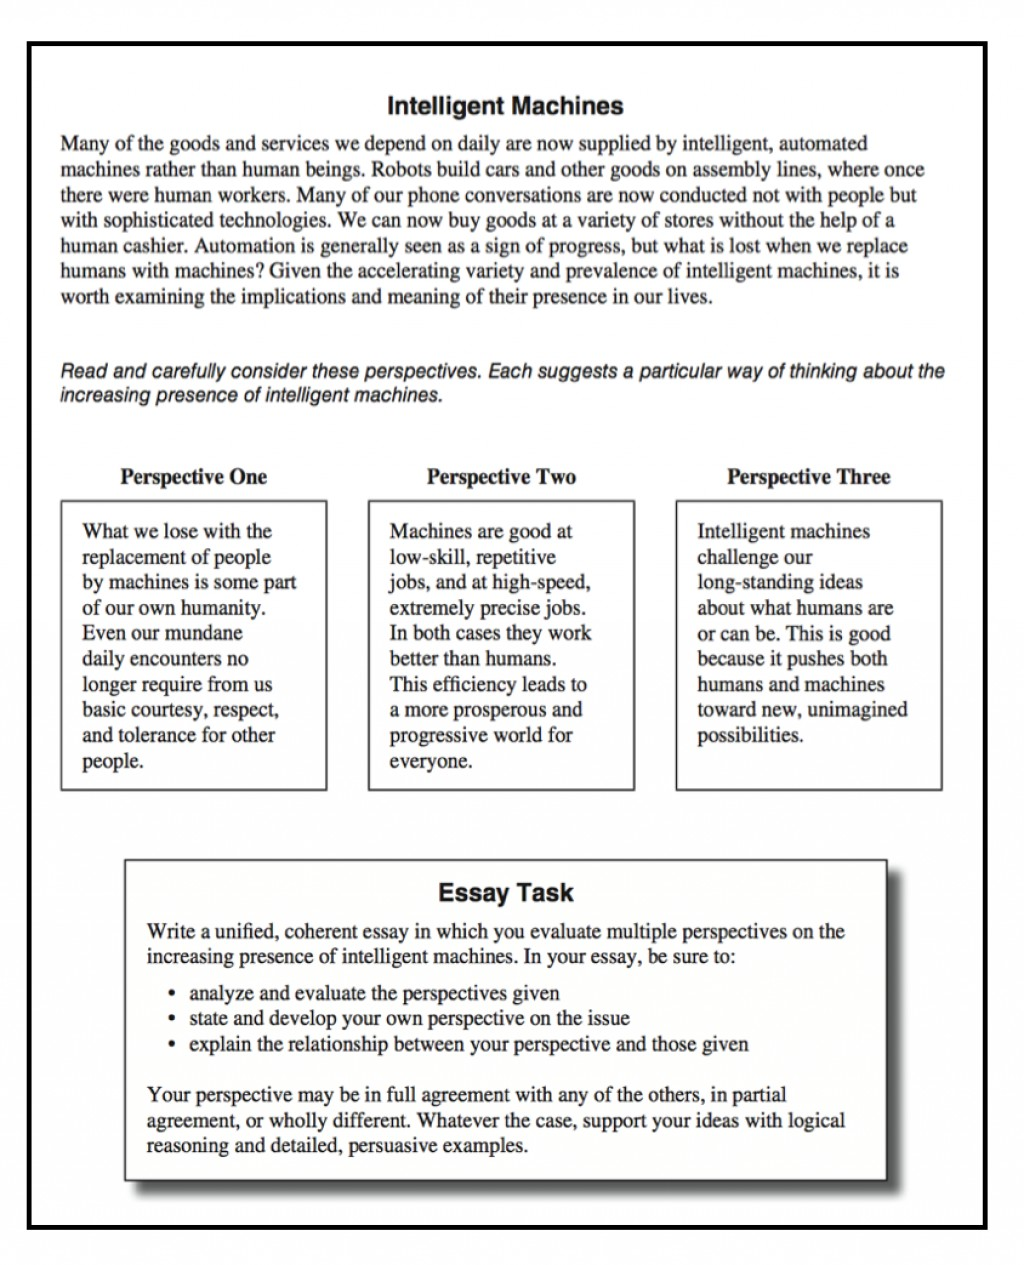 019 Screen Shot At Sat Essay Format Breathtaking New Template Pdf 2 Paper Old Large